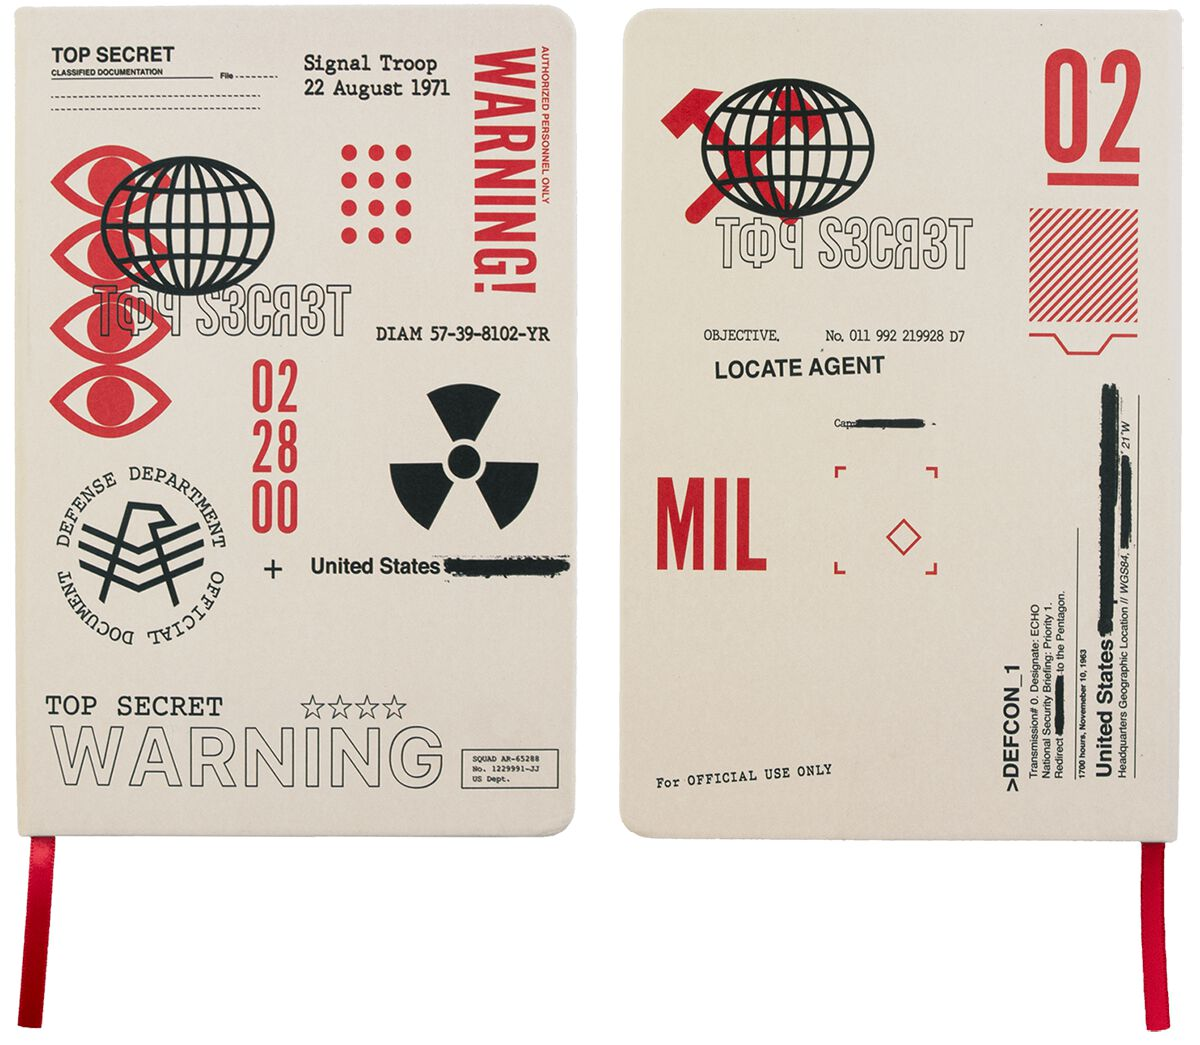 Call Of Duty  Cold War - Top Secret Documents  Notizbuch  multicolor